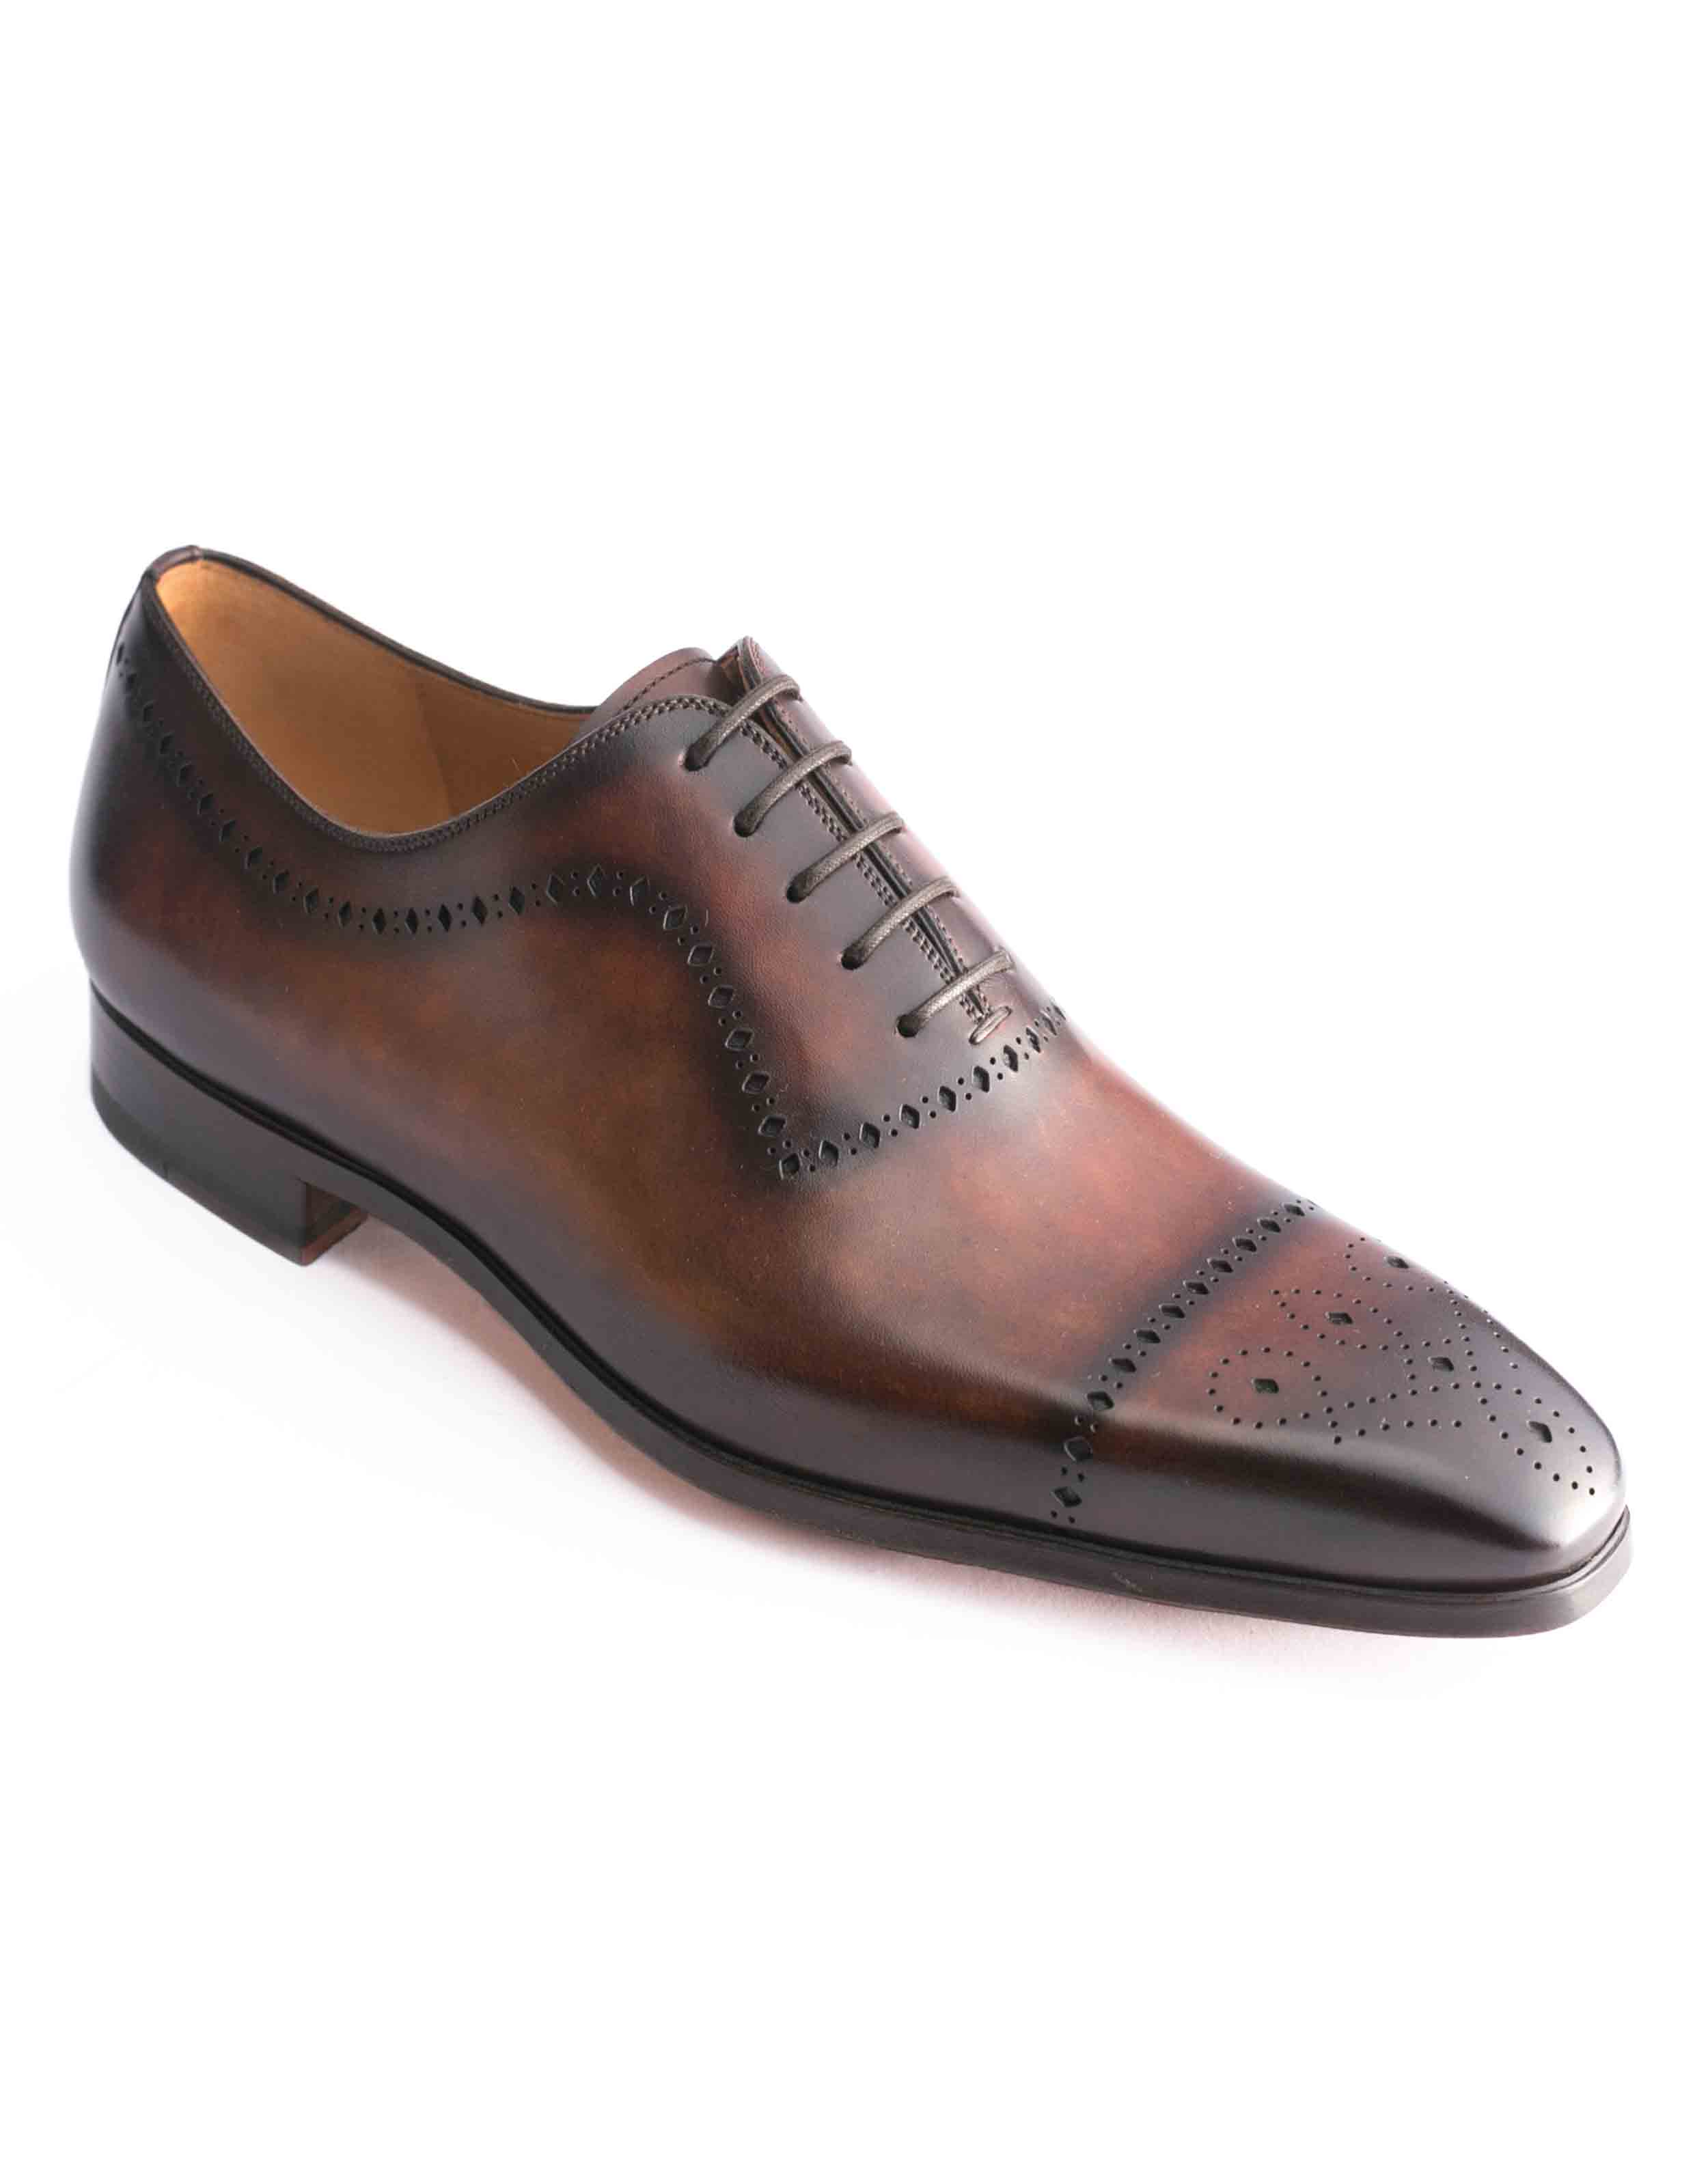 TABACO WHOLE CUT MEDALLION TOE OXFORDS2